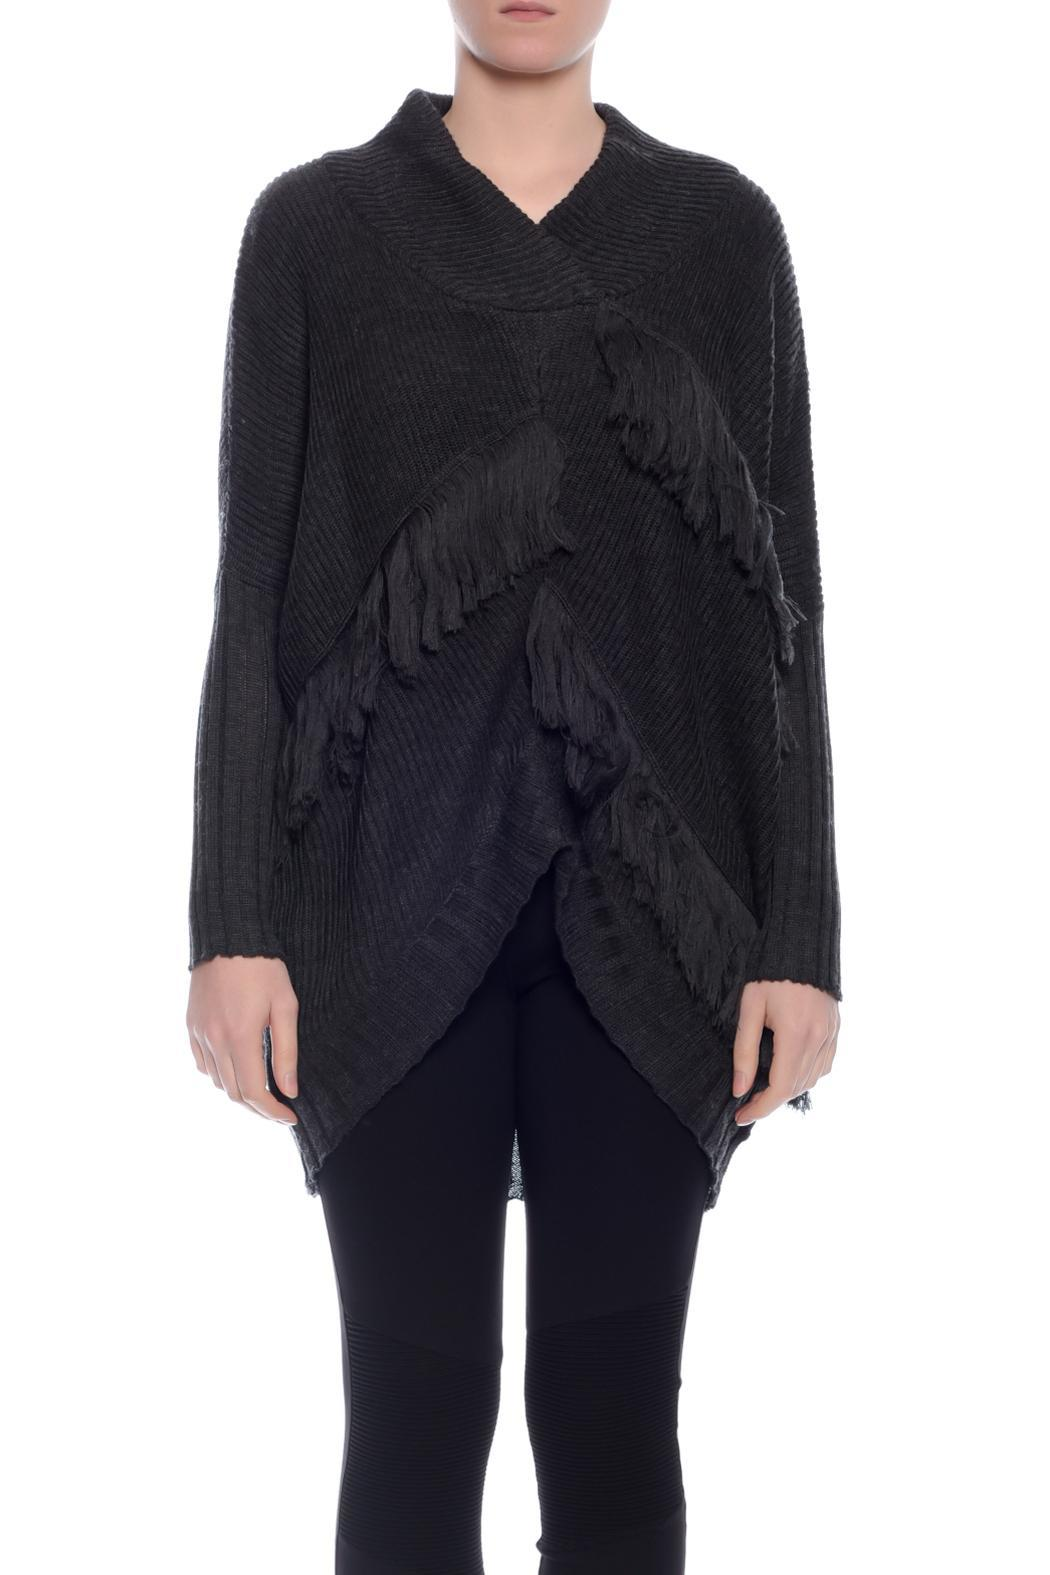 d16a233cc2 POL Soft Fringe Knit Sweater from New South Wales by Carey   Co ...